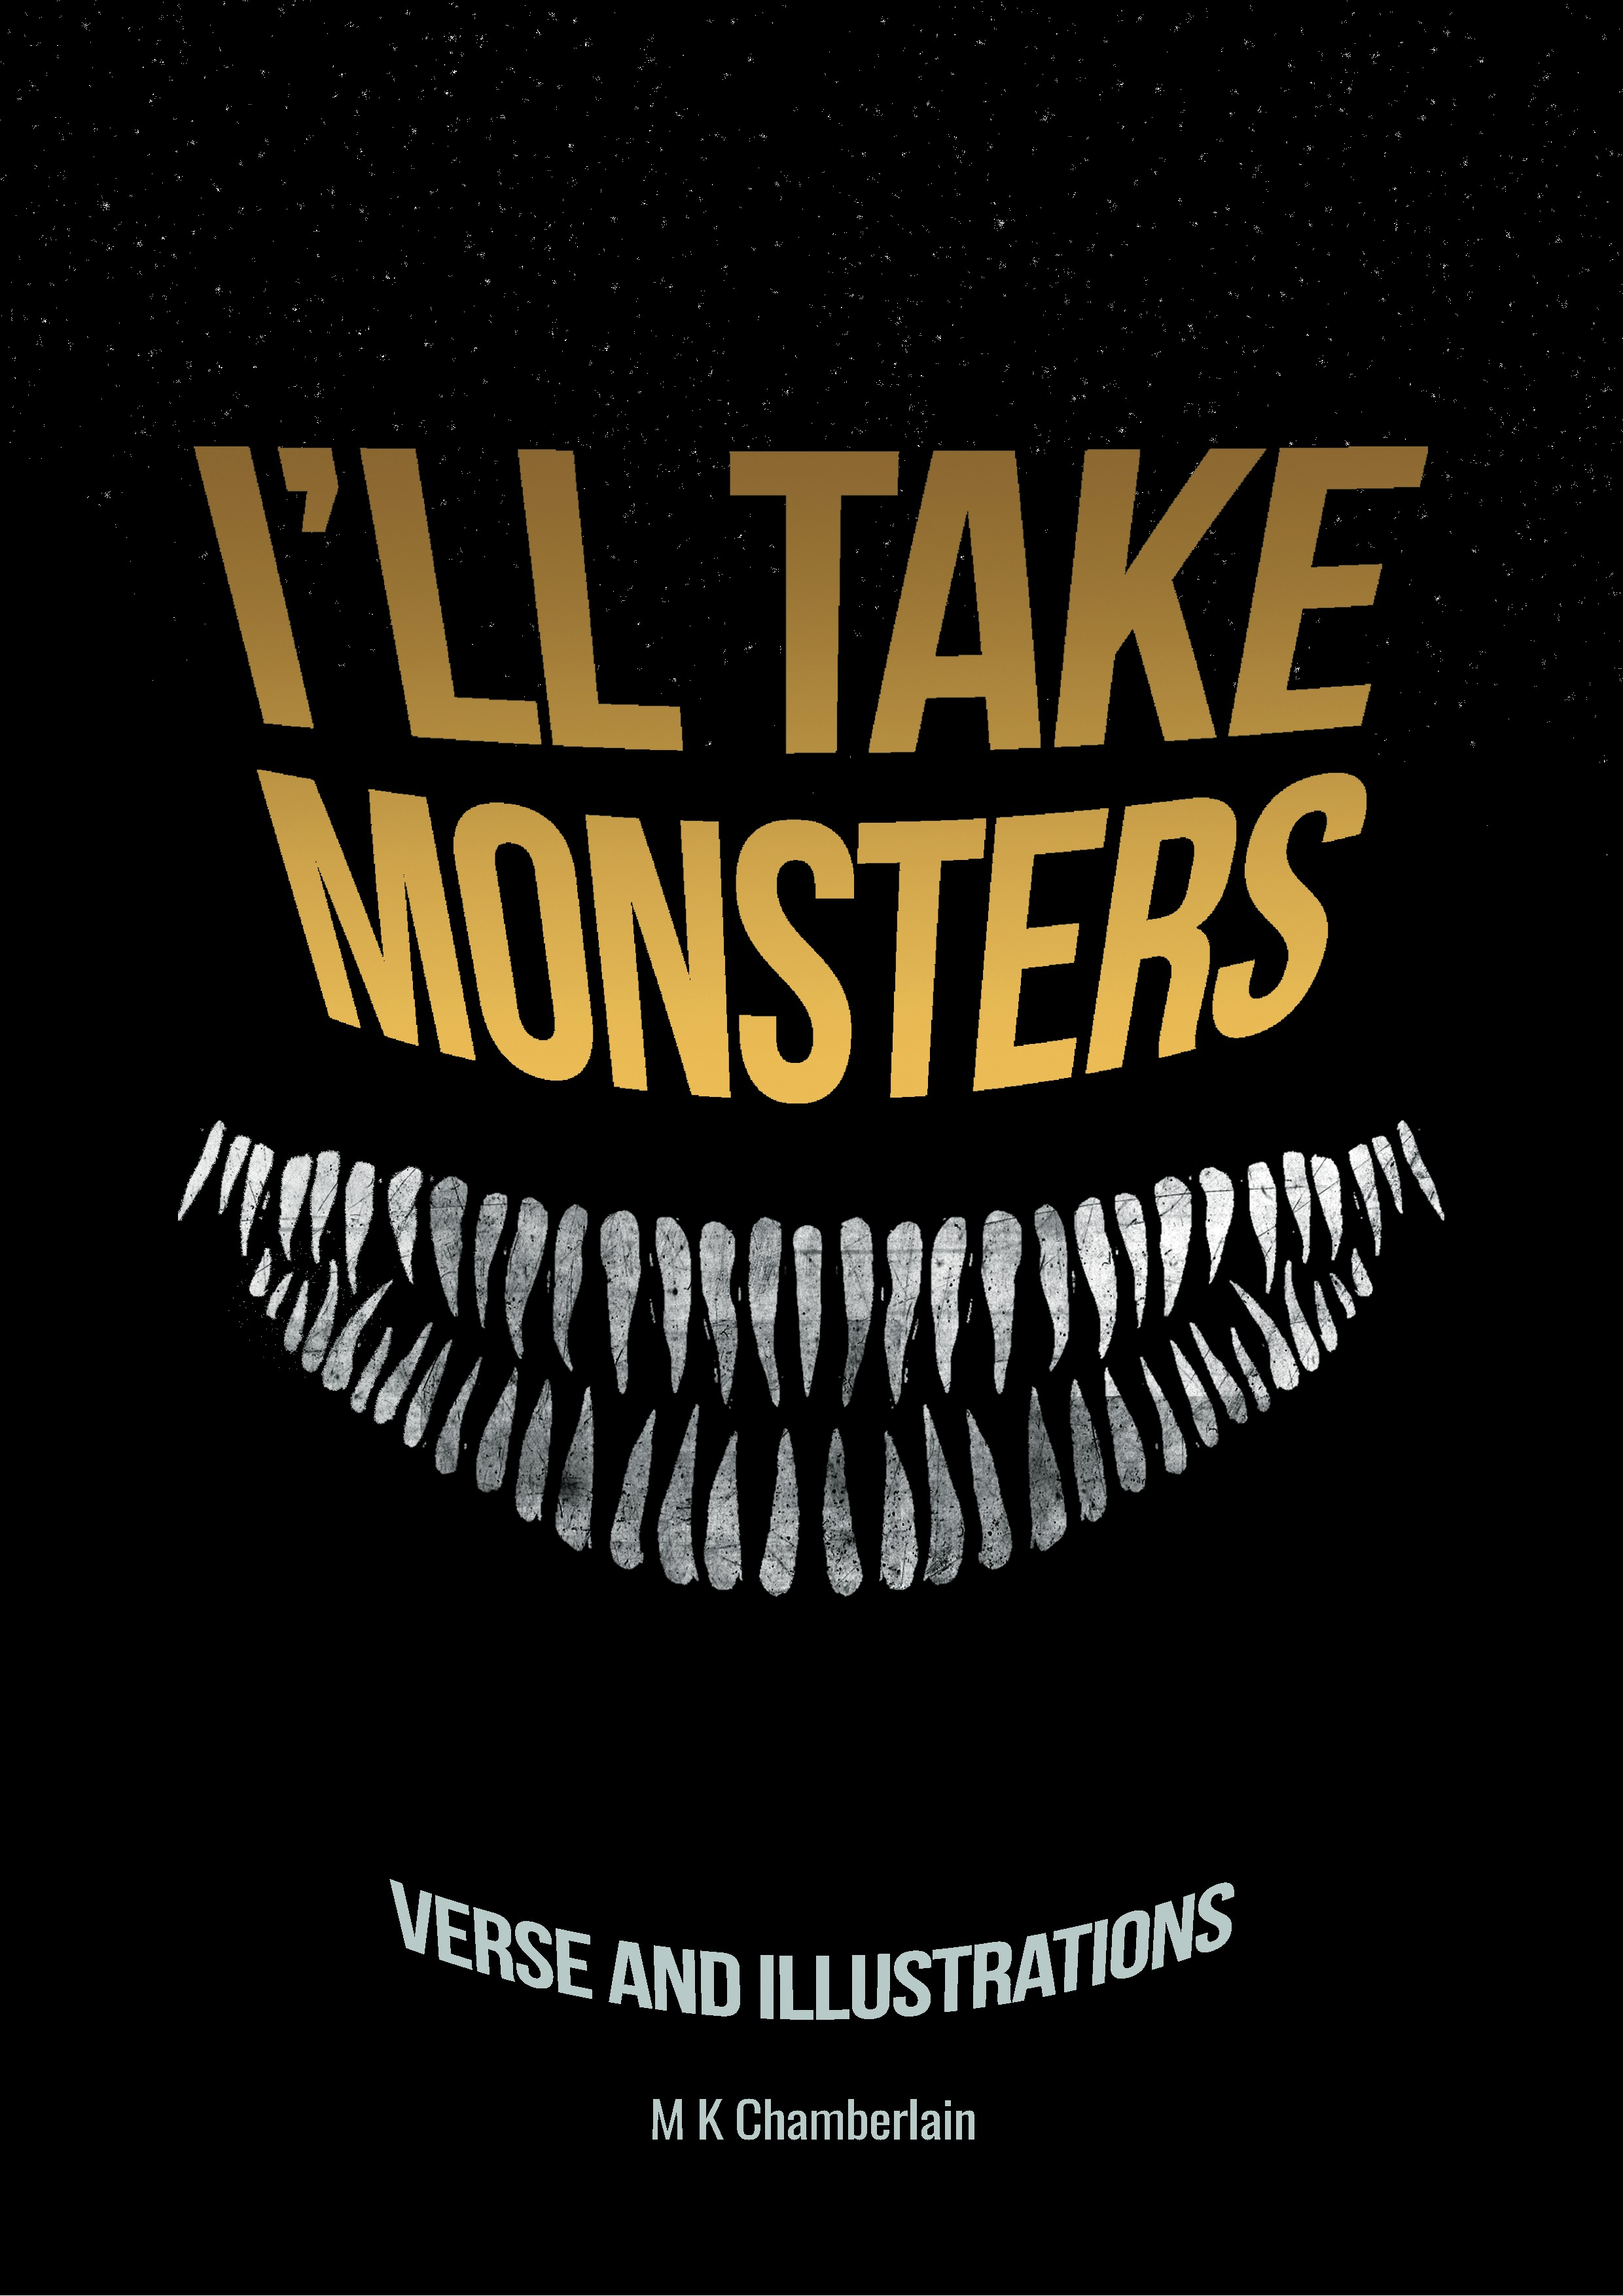 I'll Take Monsters - Book Cover Design